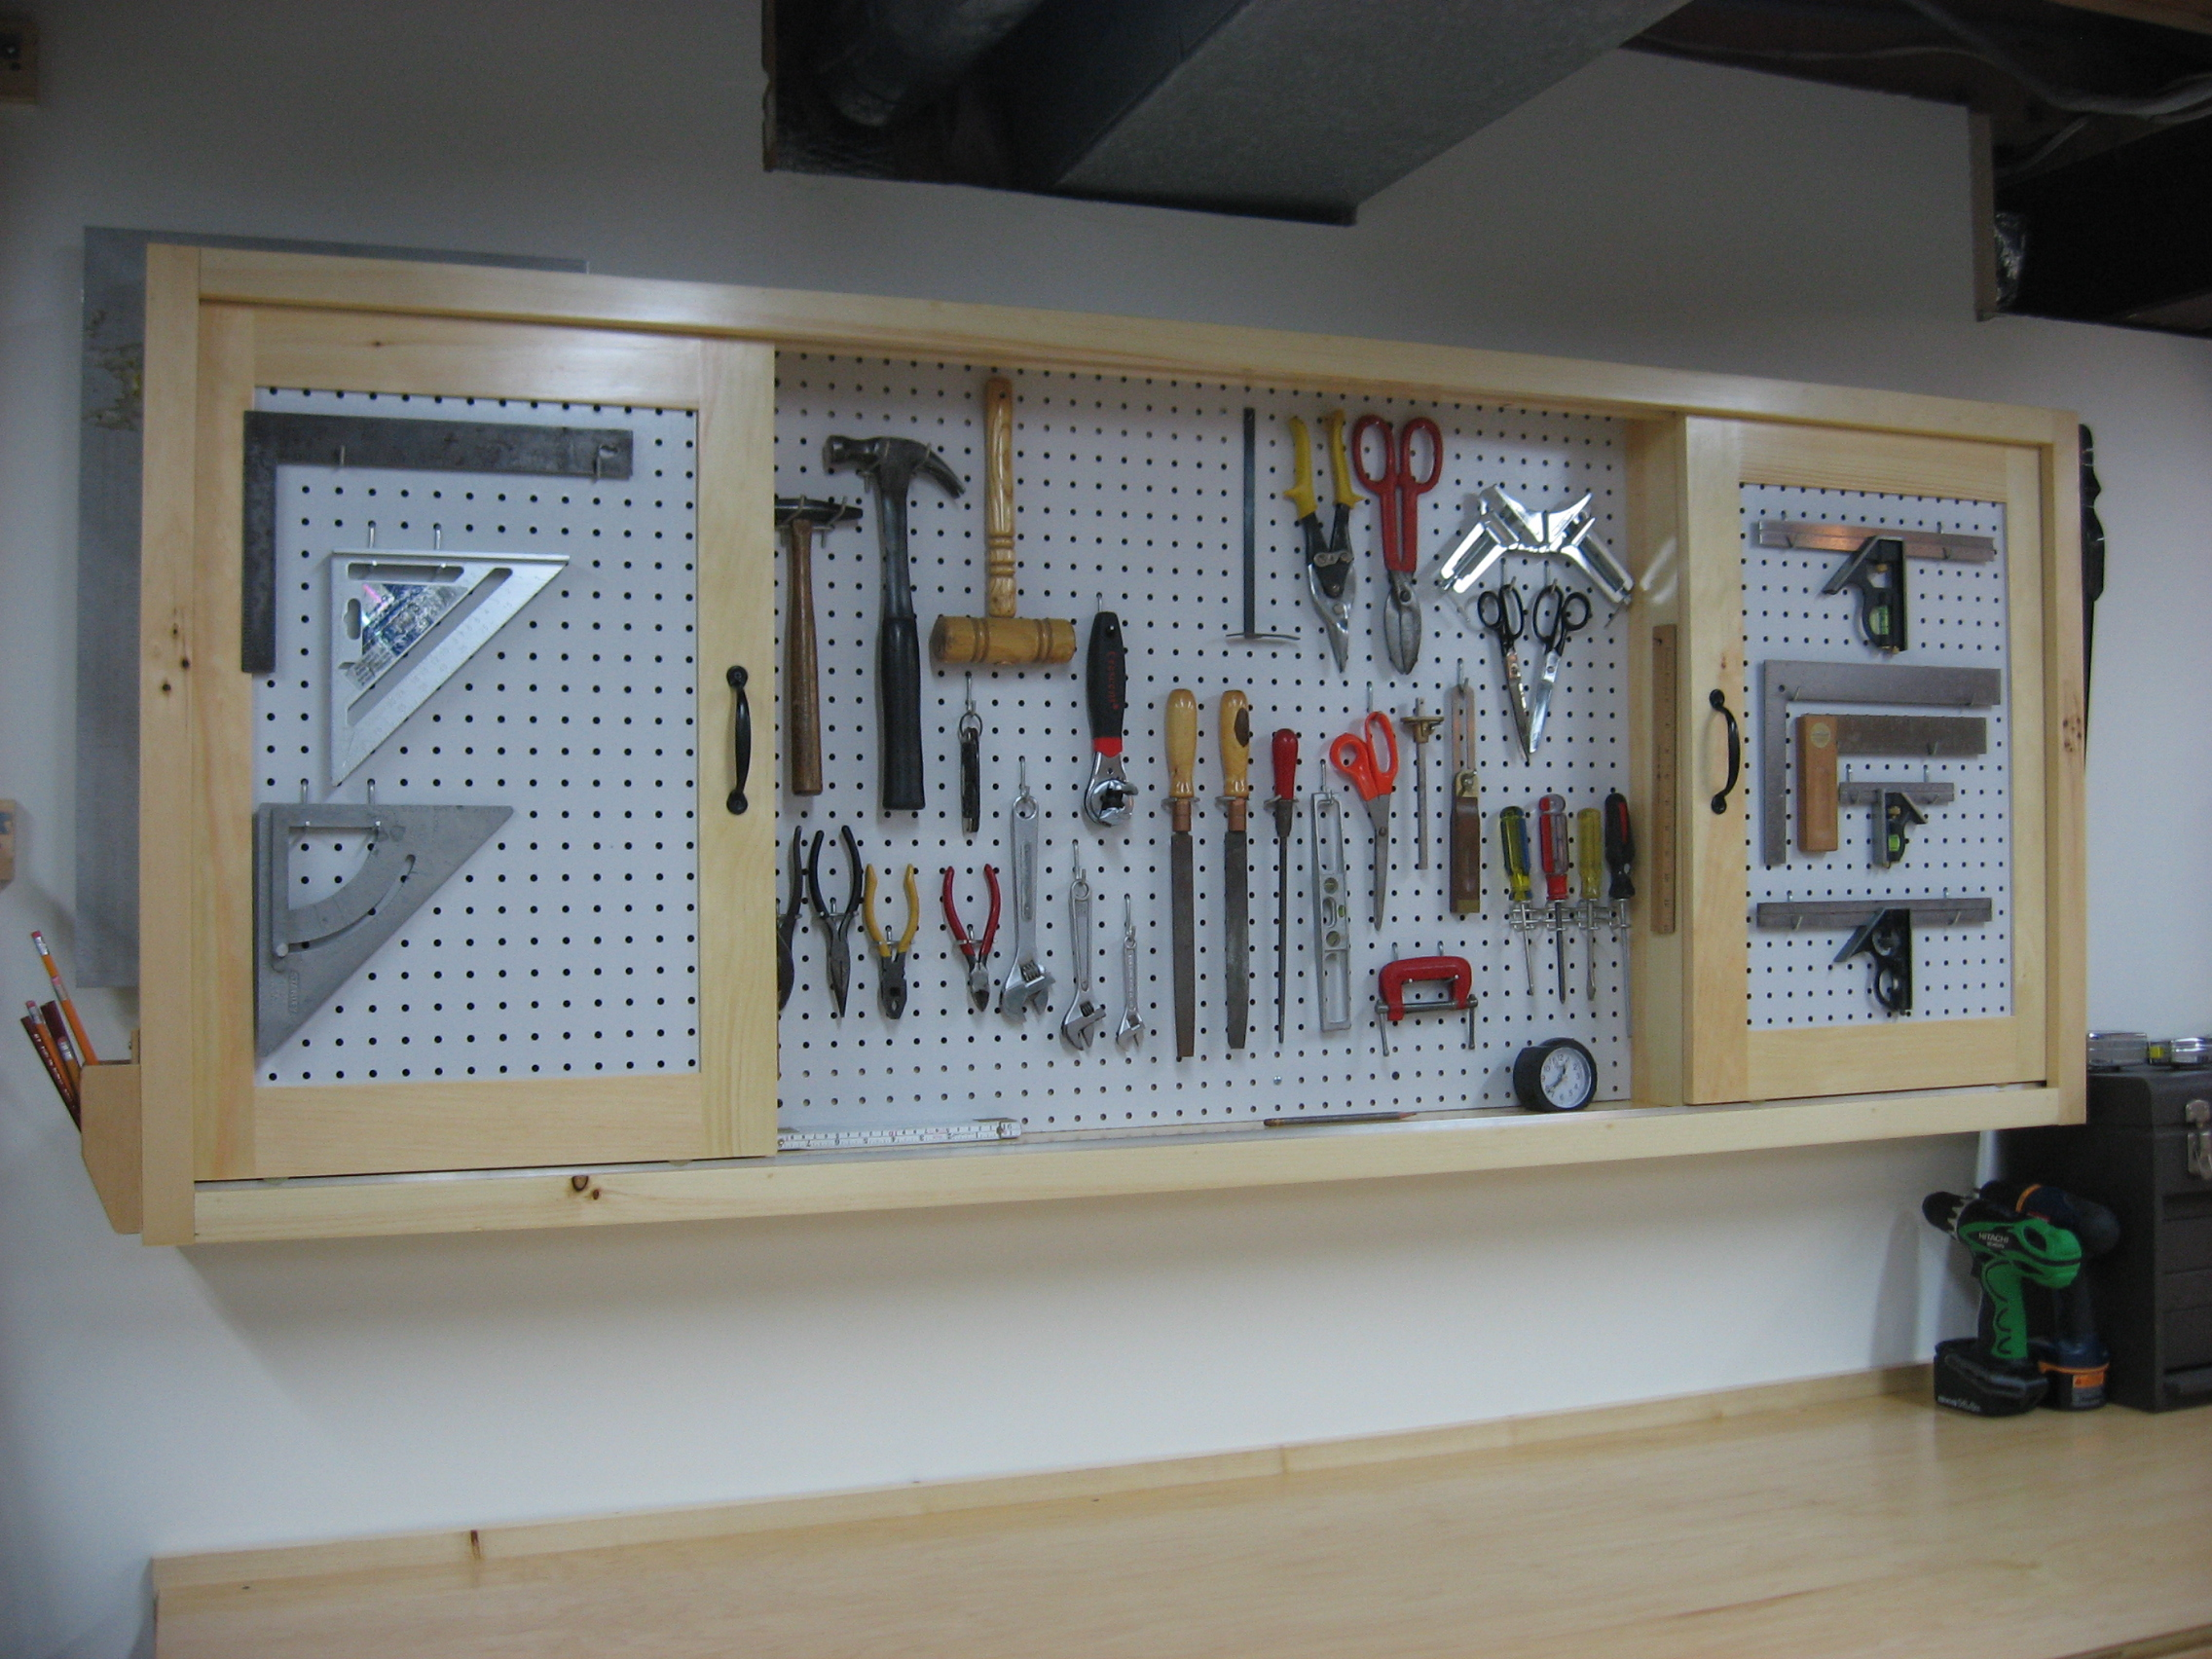 Step by step woodyworking: More Workbench plans pegboard